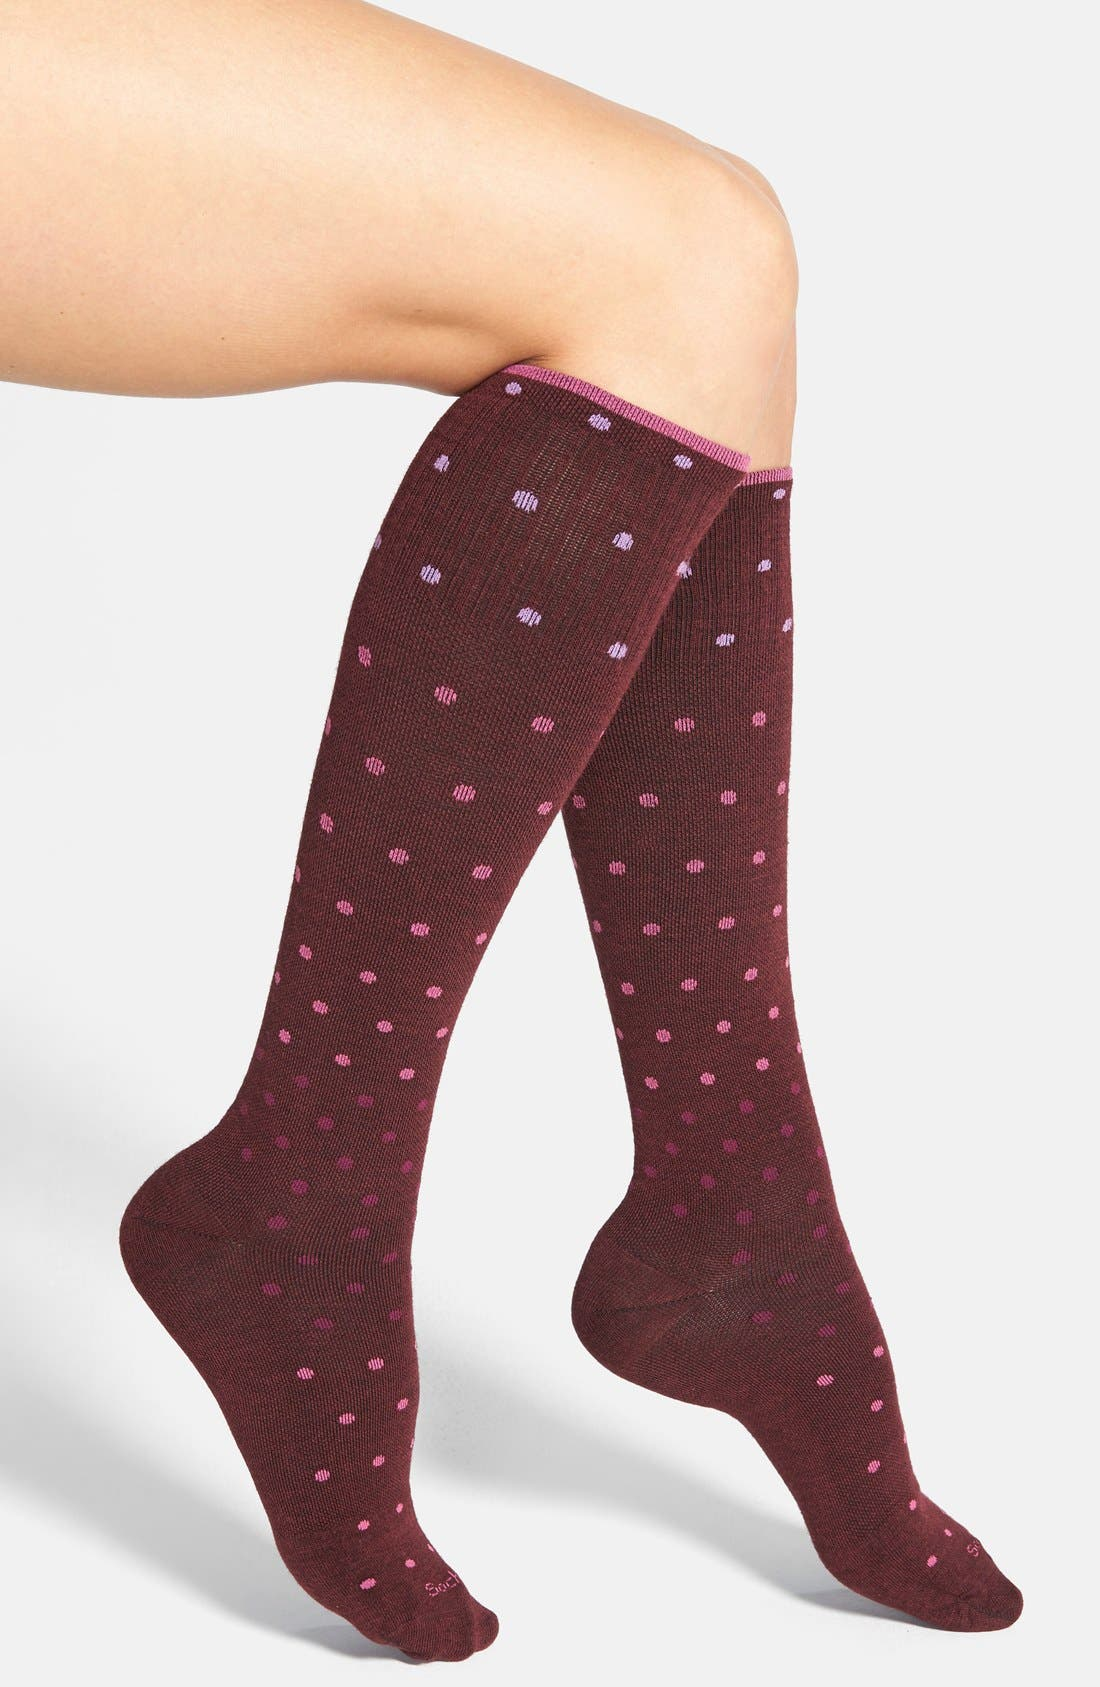 'Goodhew - On the Spot' Compression Knee Socks,                             Main thumbnail 4, color,